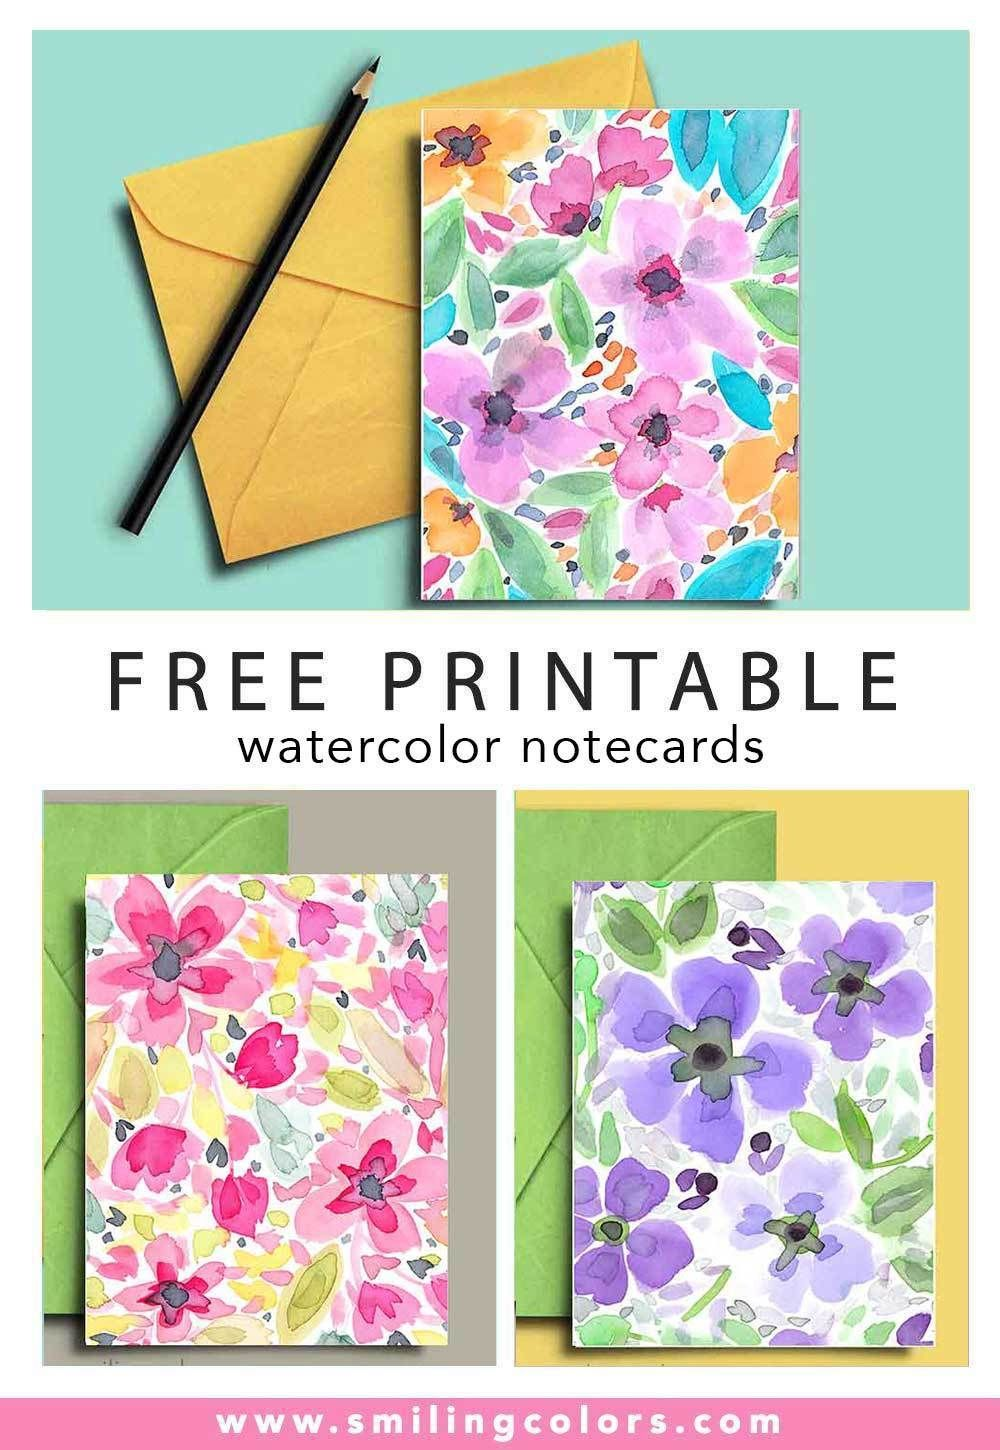 Free Printable Watercolor Notecards That You Can Download Now